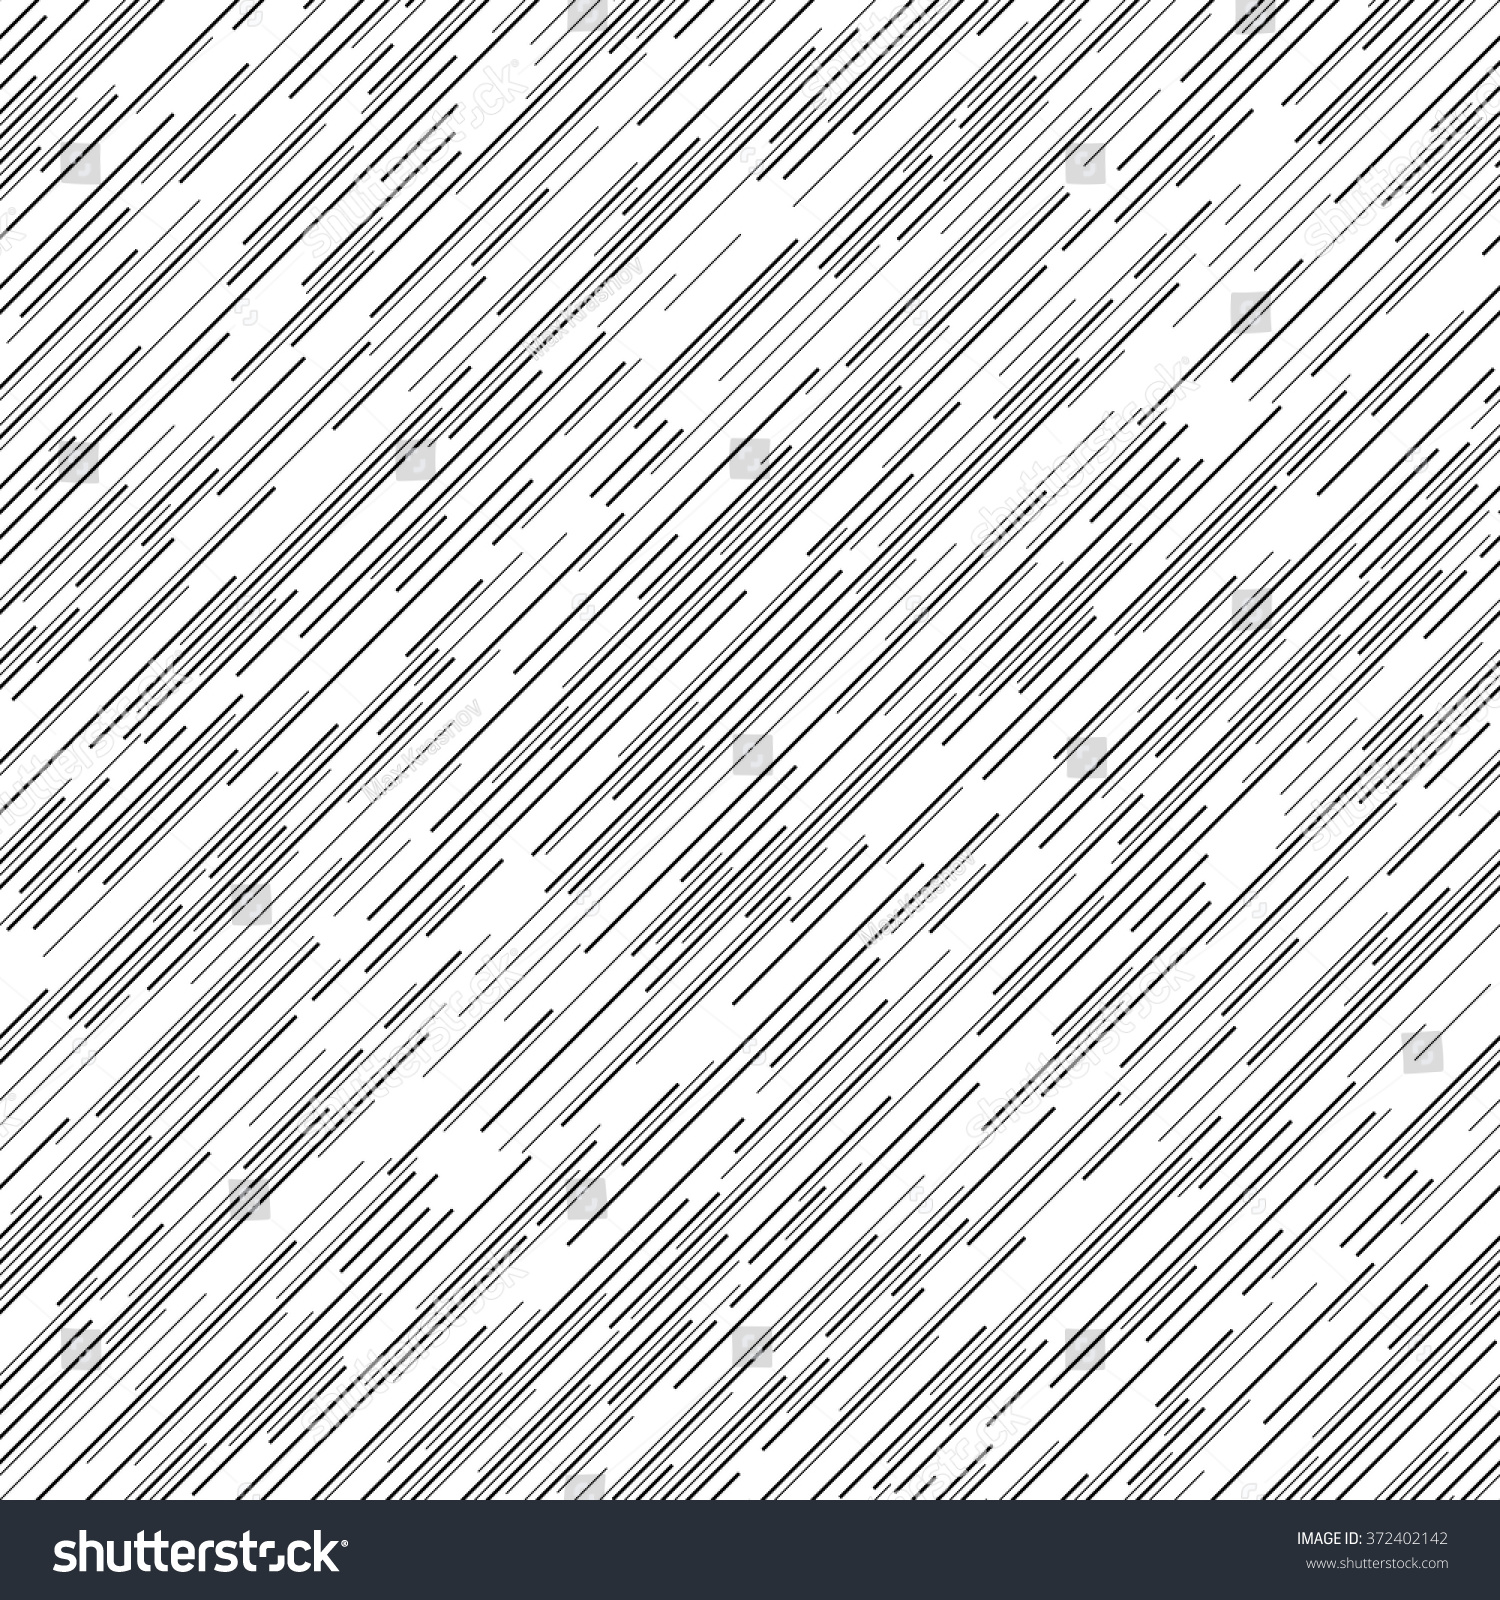 Line Texture Black And White : Seamless diagonal line pattern vector black stock